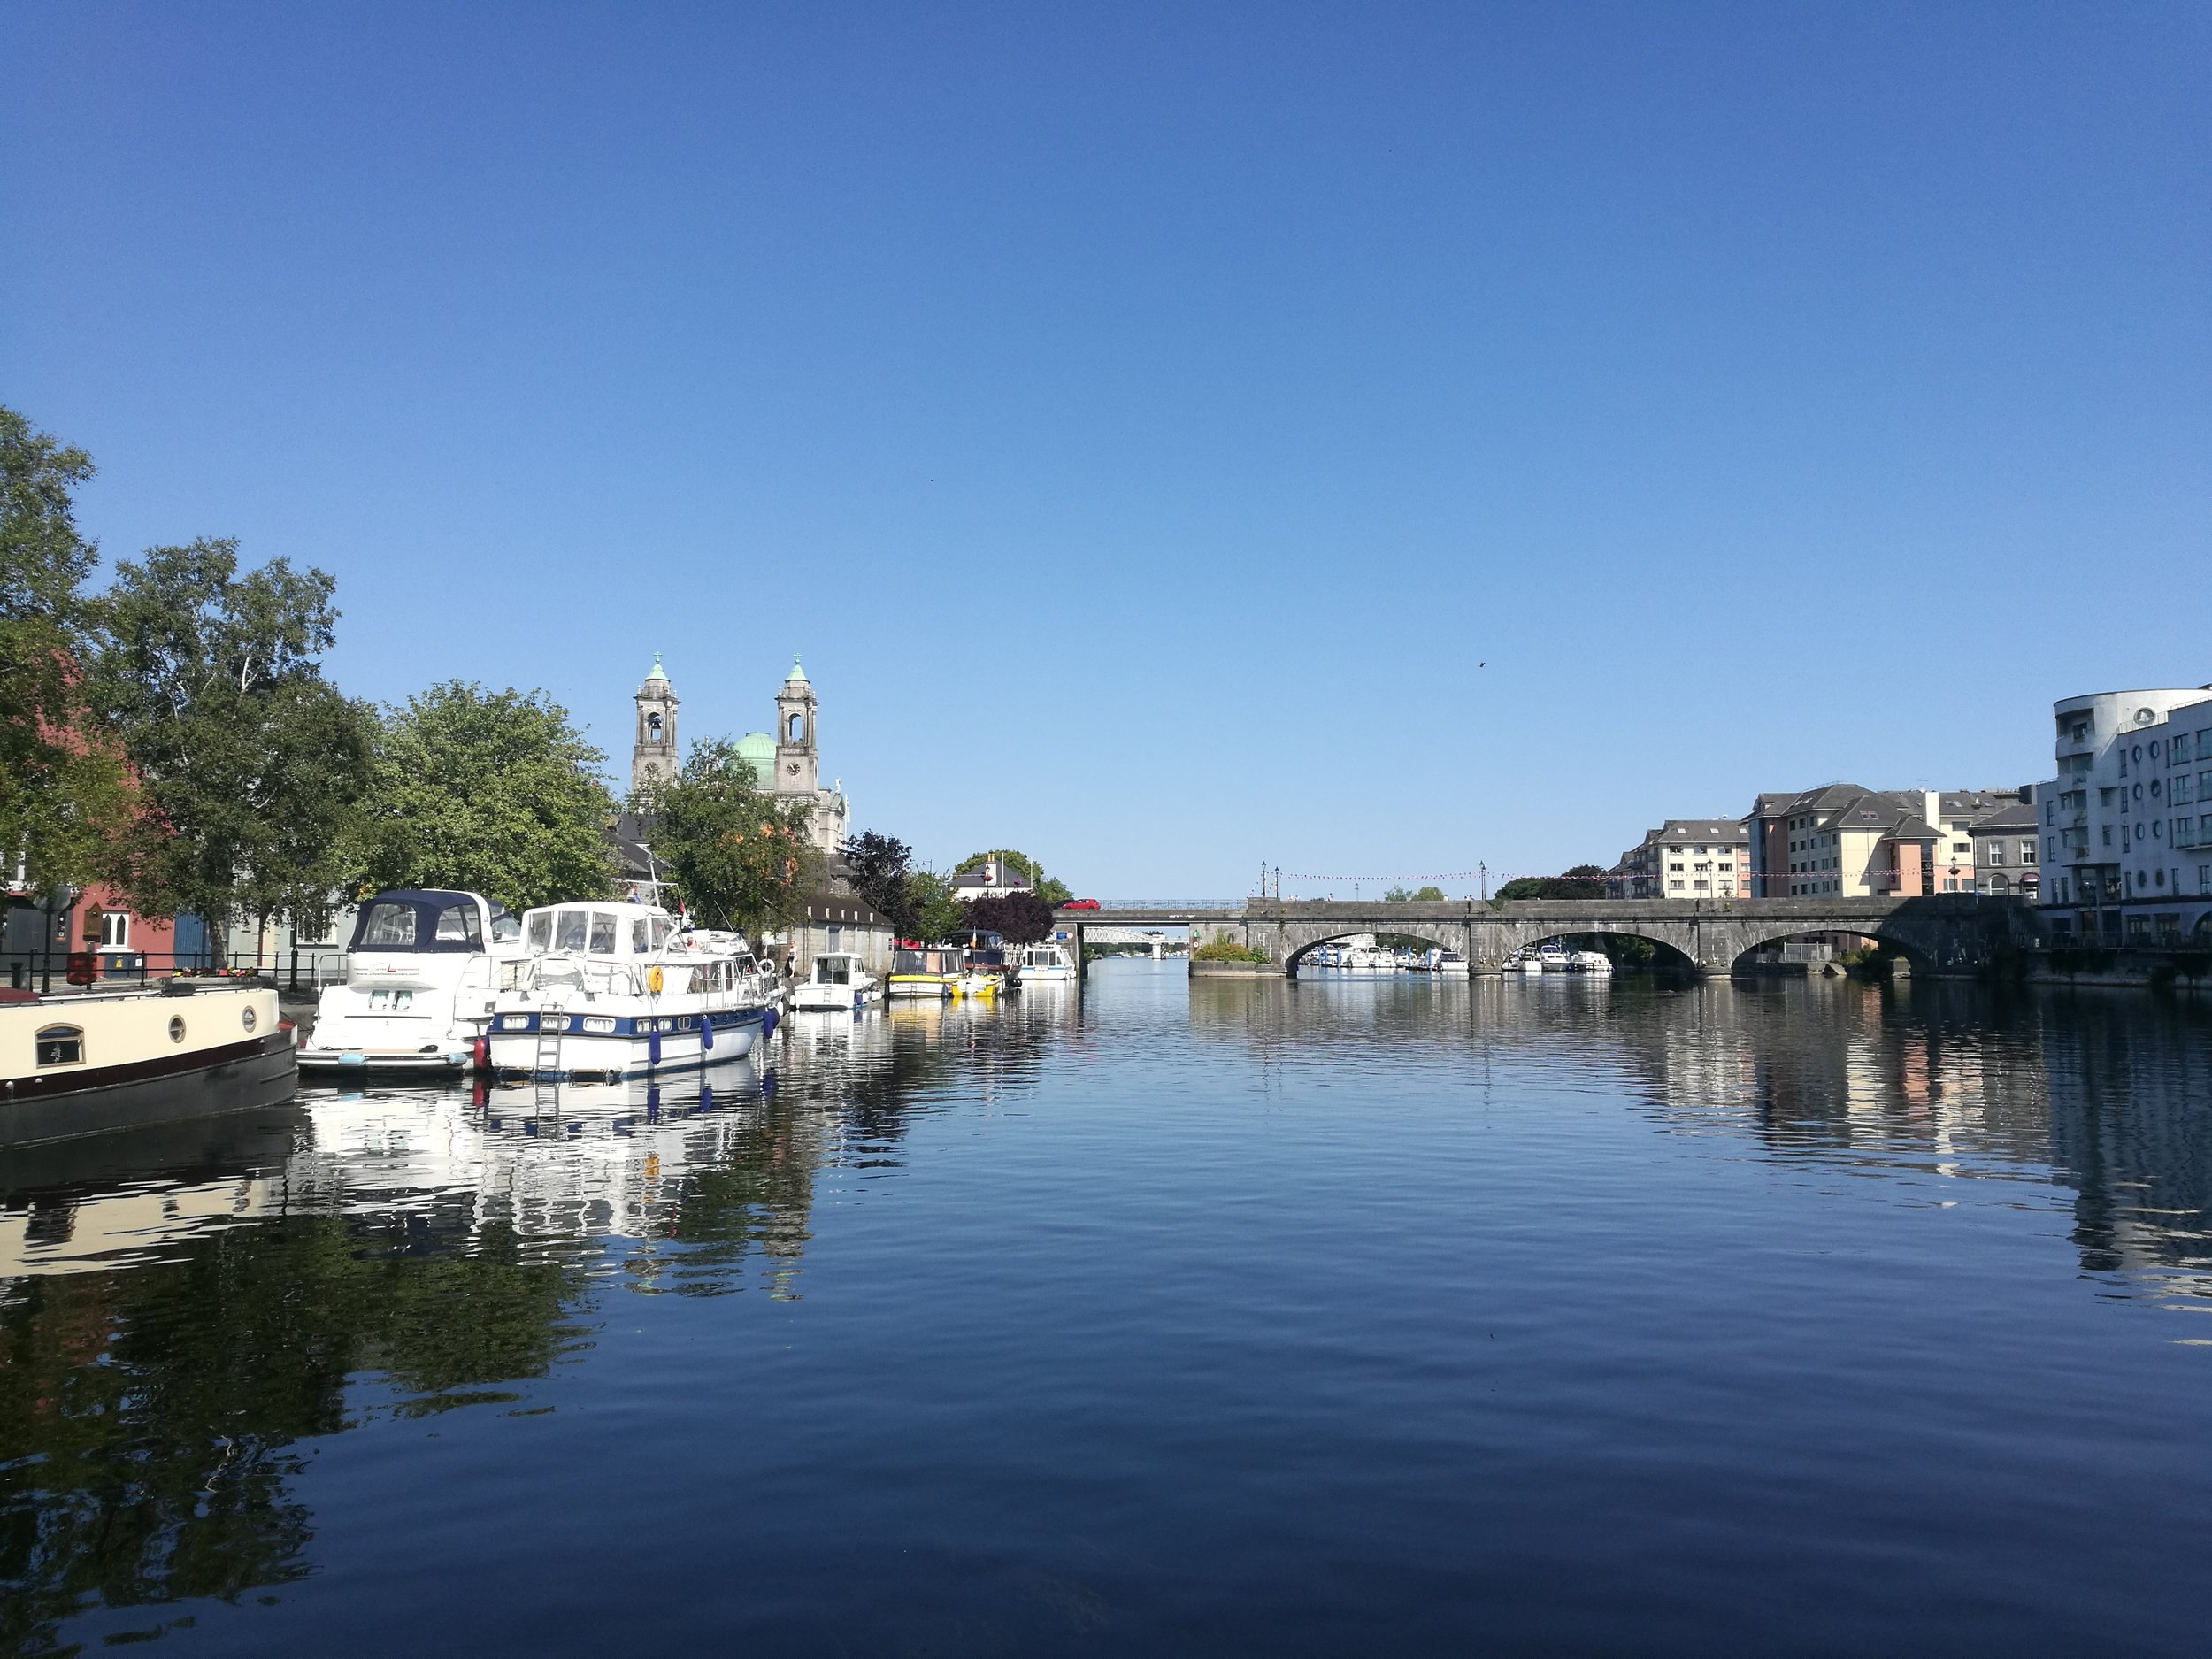 Visiting Athlone while boating in Ireland